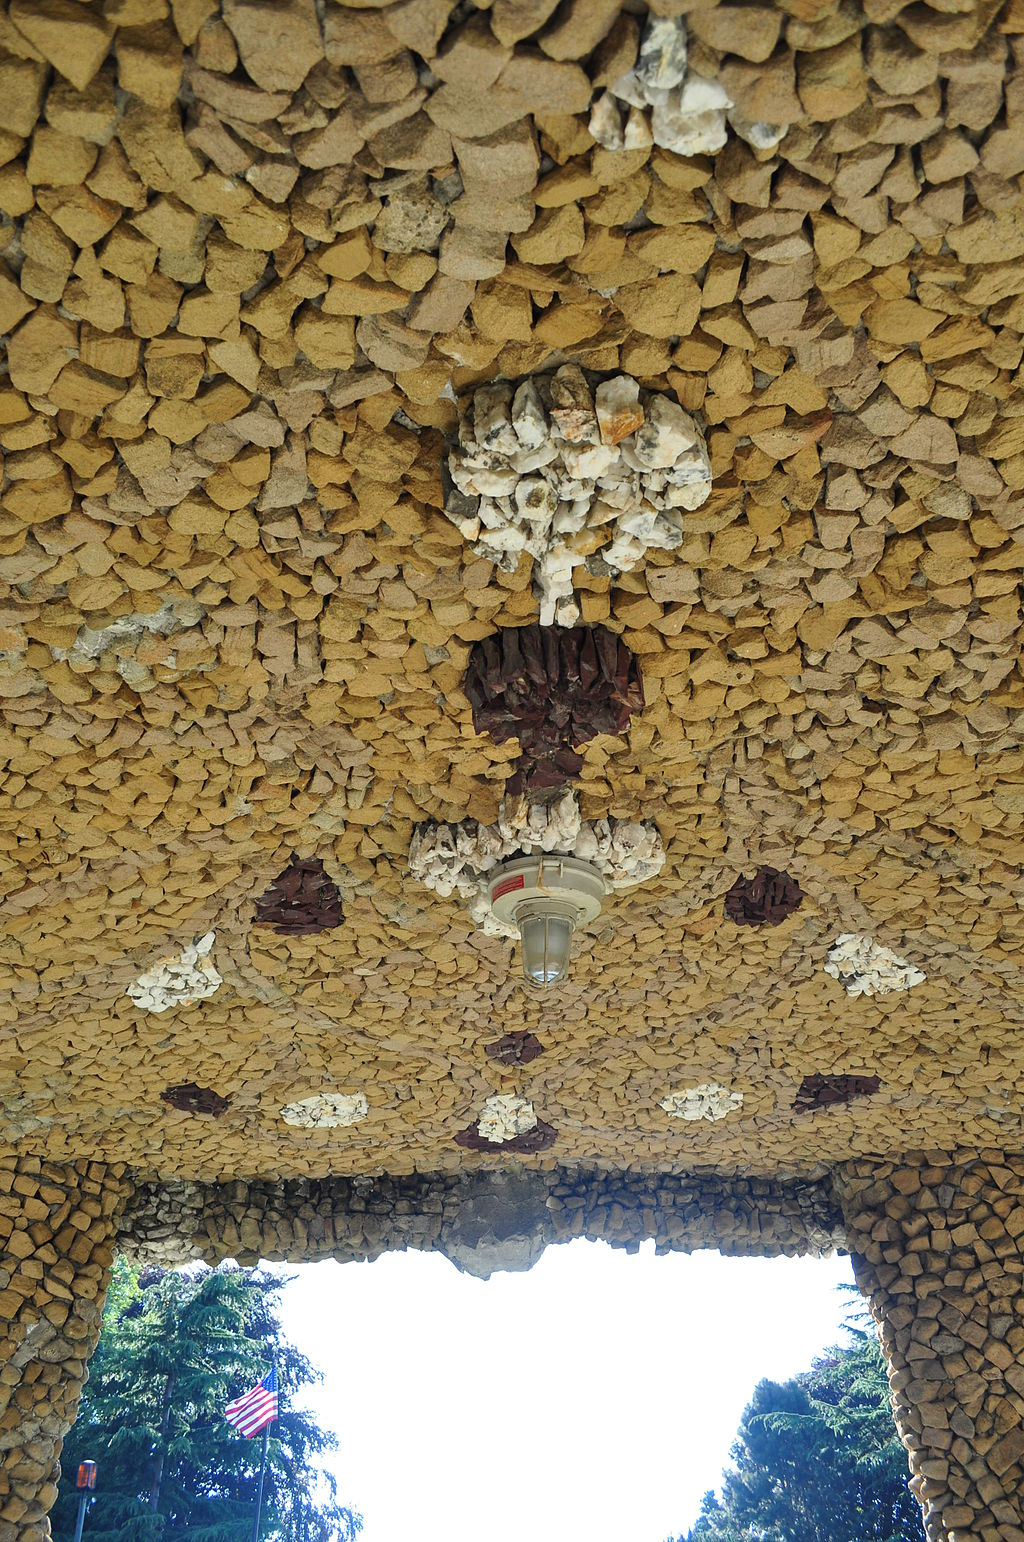 The ceiling of the bandstand features a decorative stone mosaic.